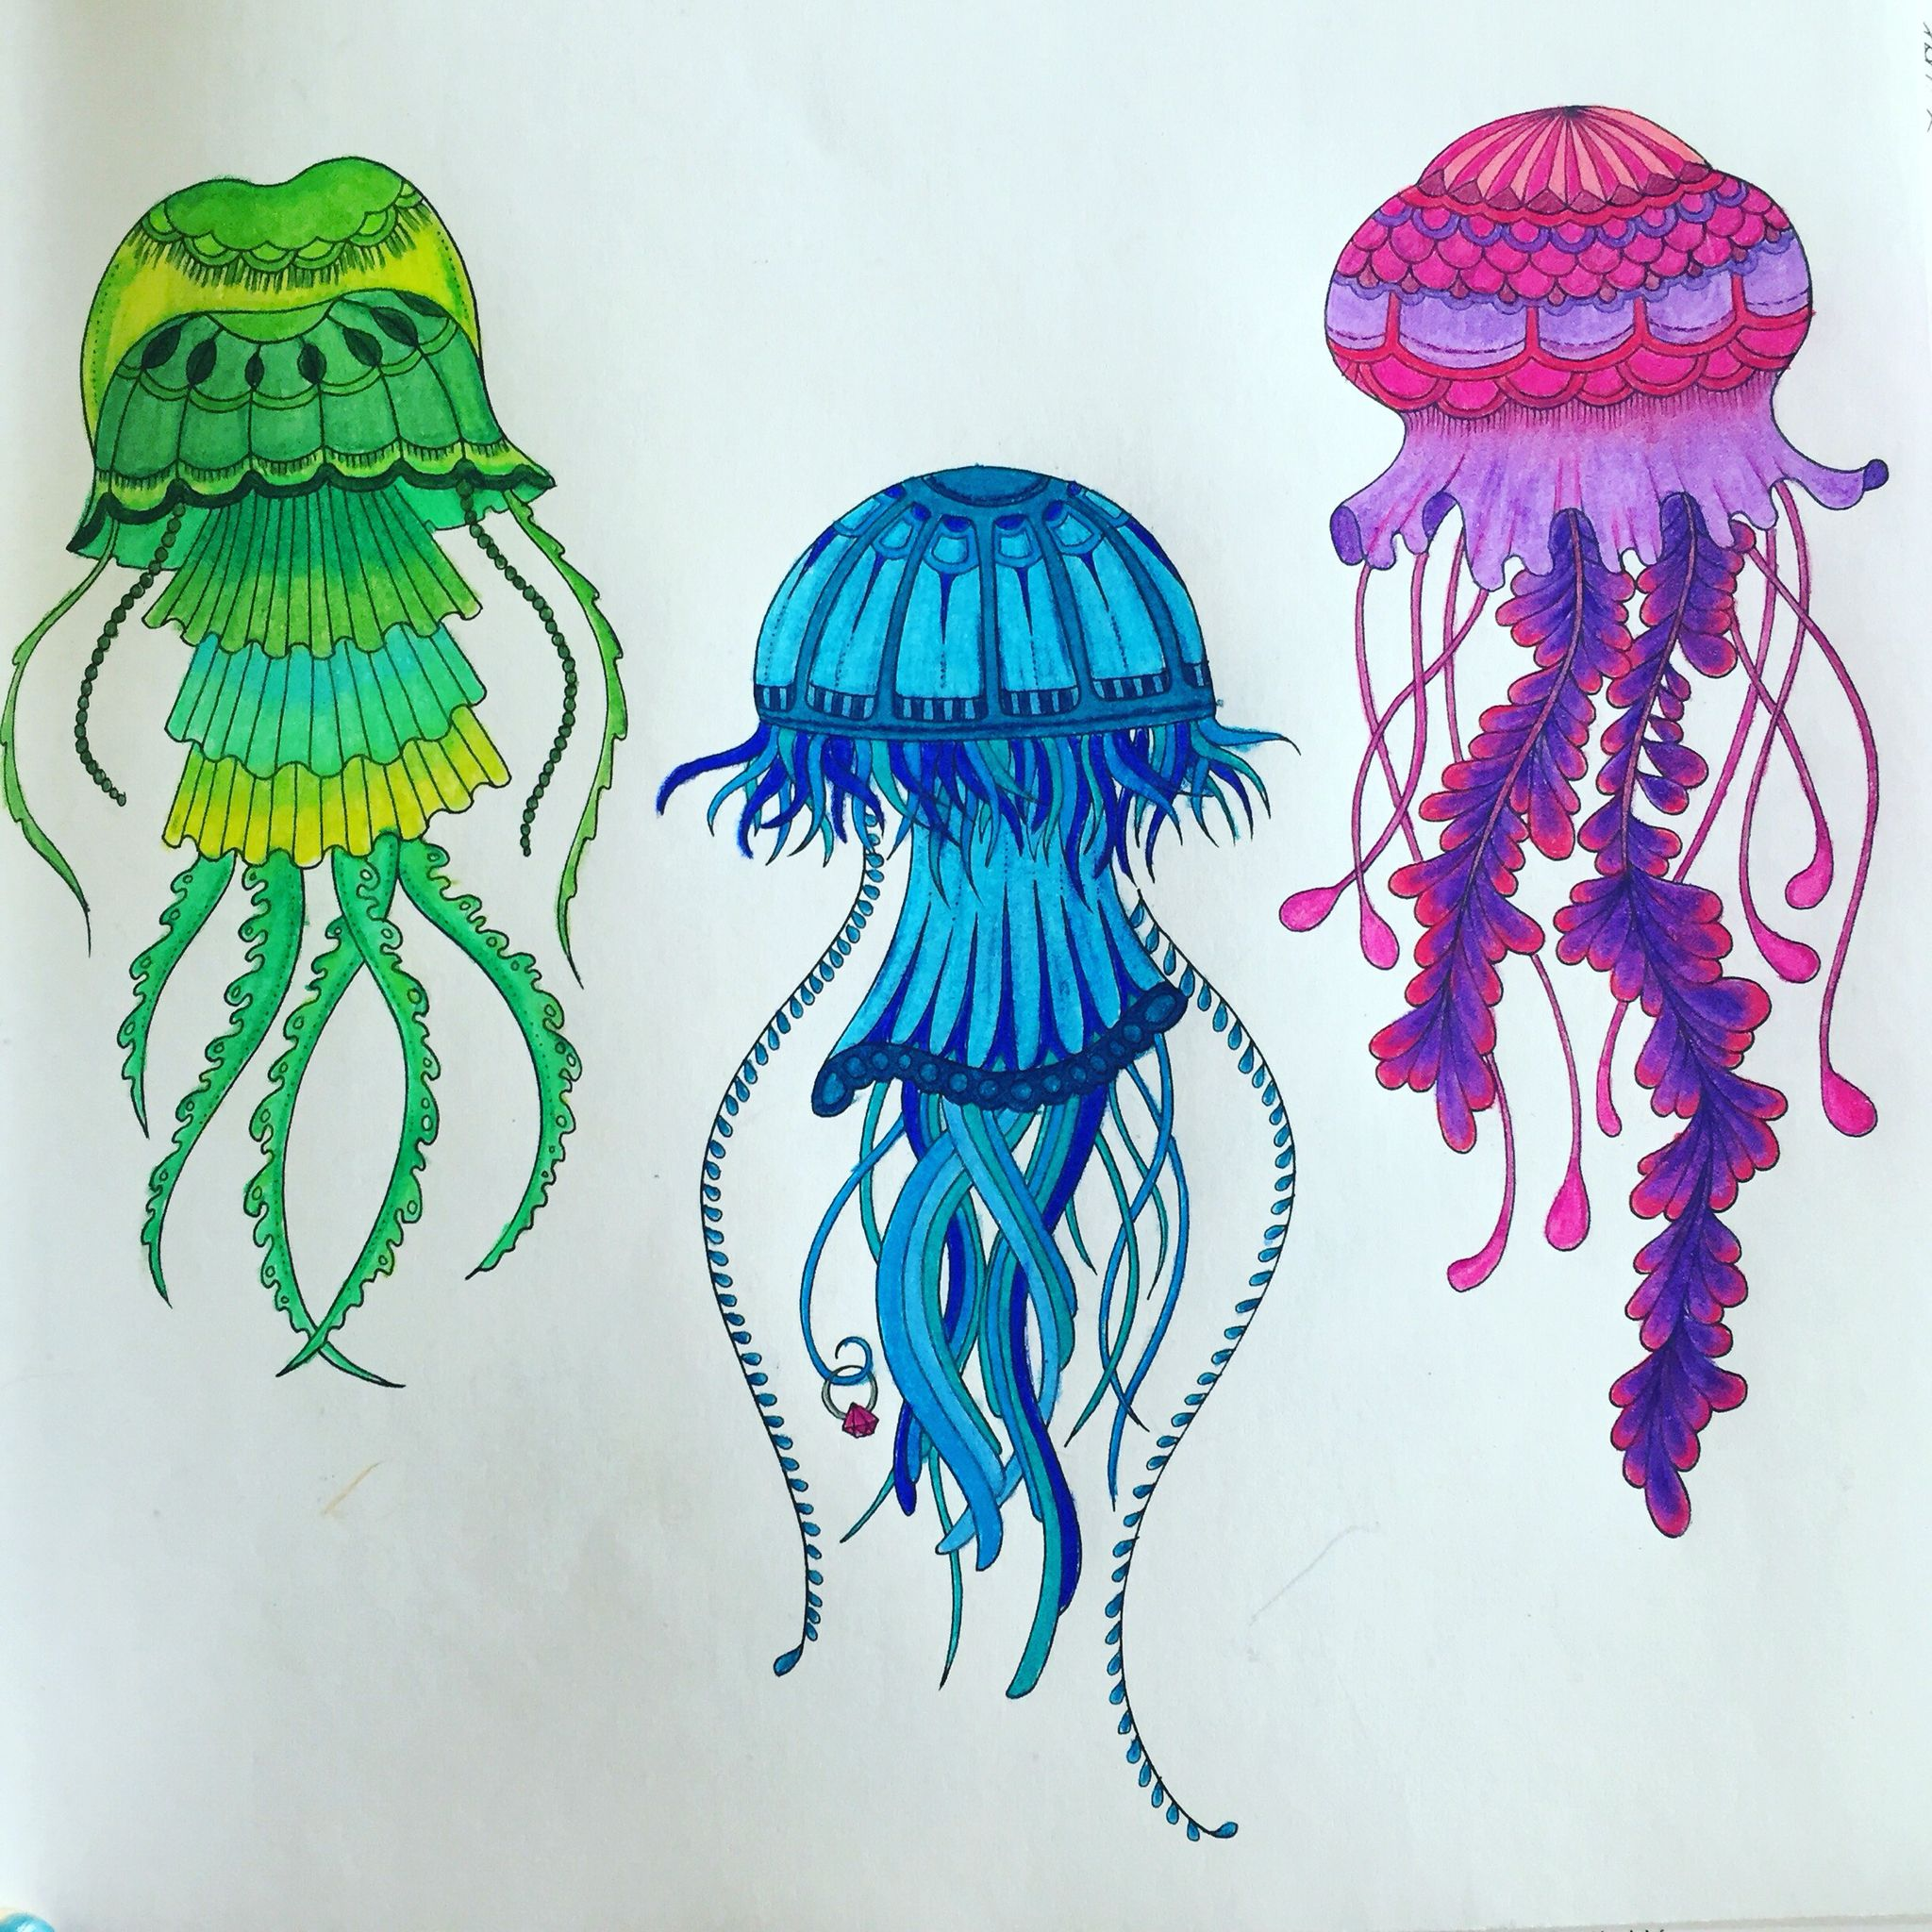 Lost Ocean Adultcoloring Book By Johanna Basford Rainbow Jellyfish Colorir Fotos